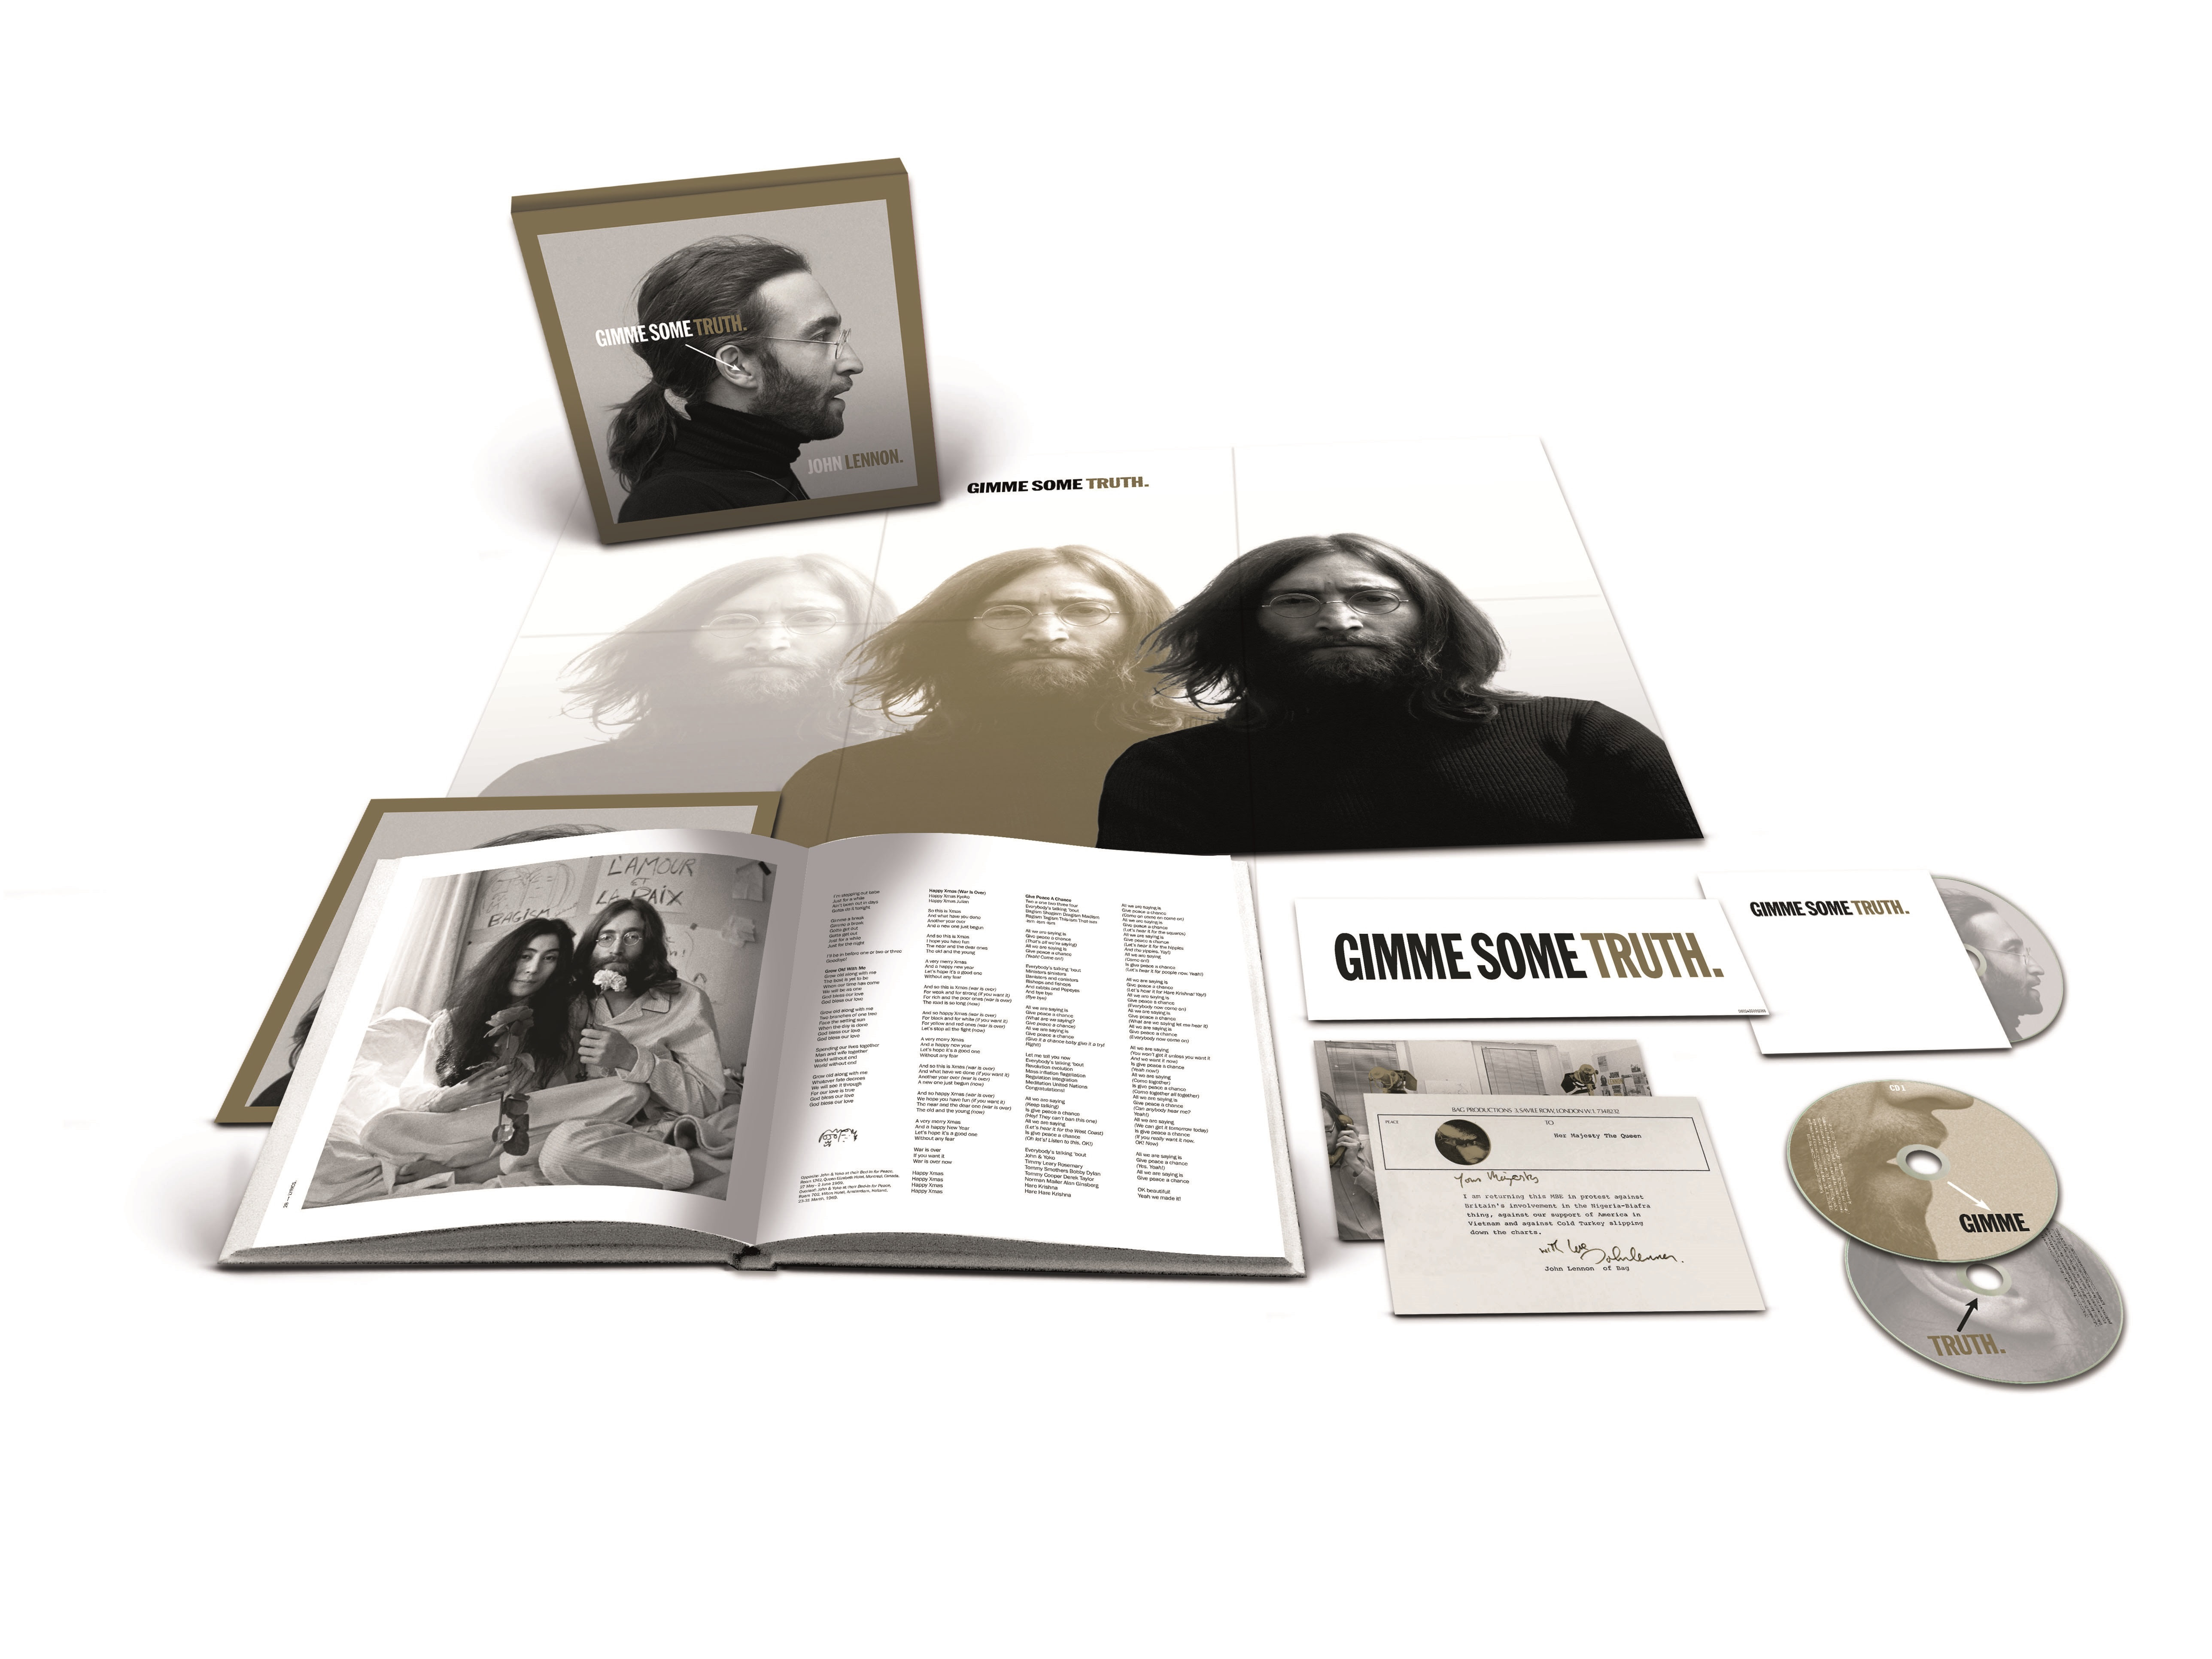 Lennon-Gimme Some Truth-3D Product Image-Deluxe Edition (ver 2)-Final.jpg